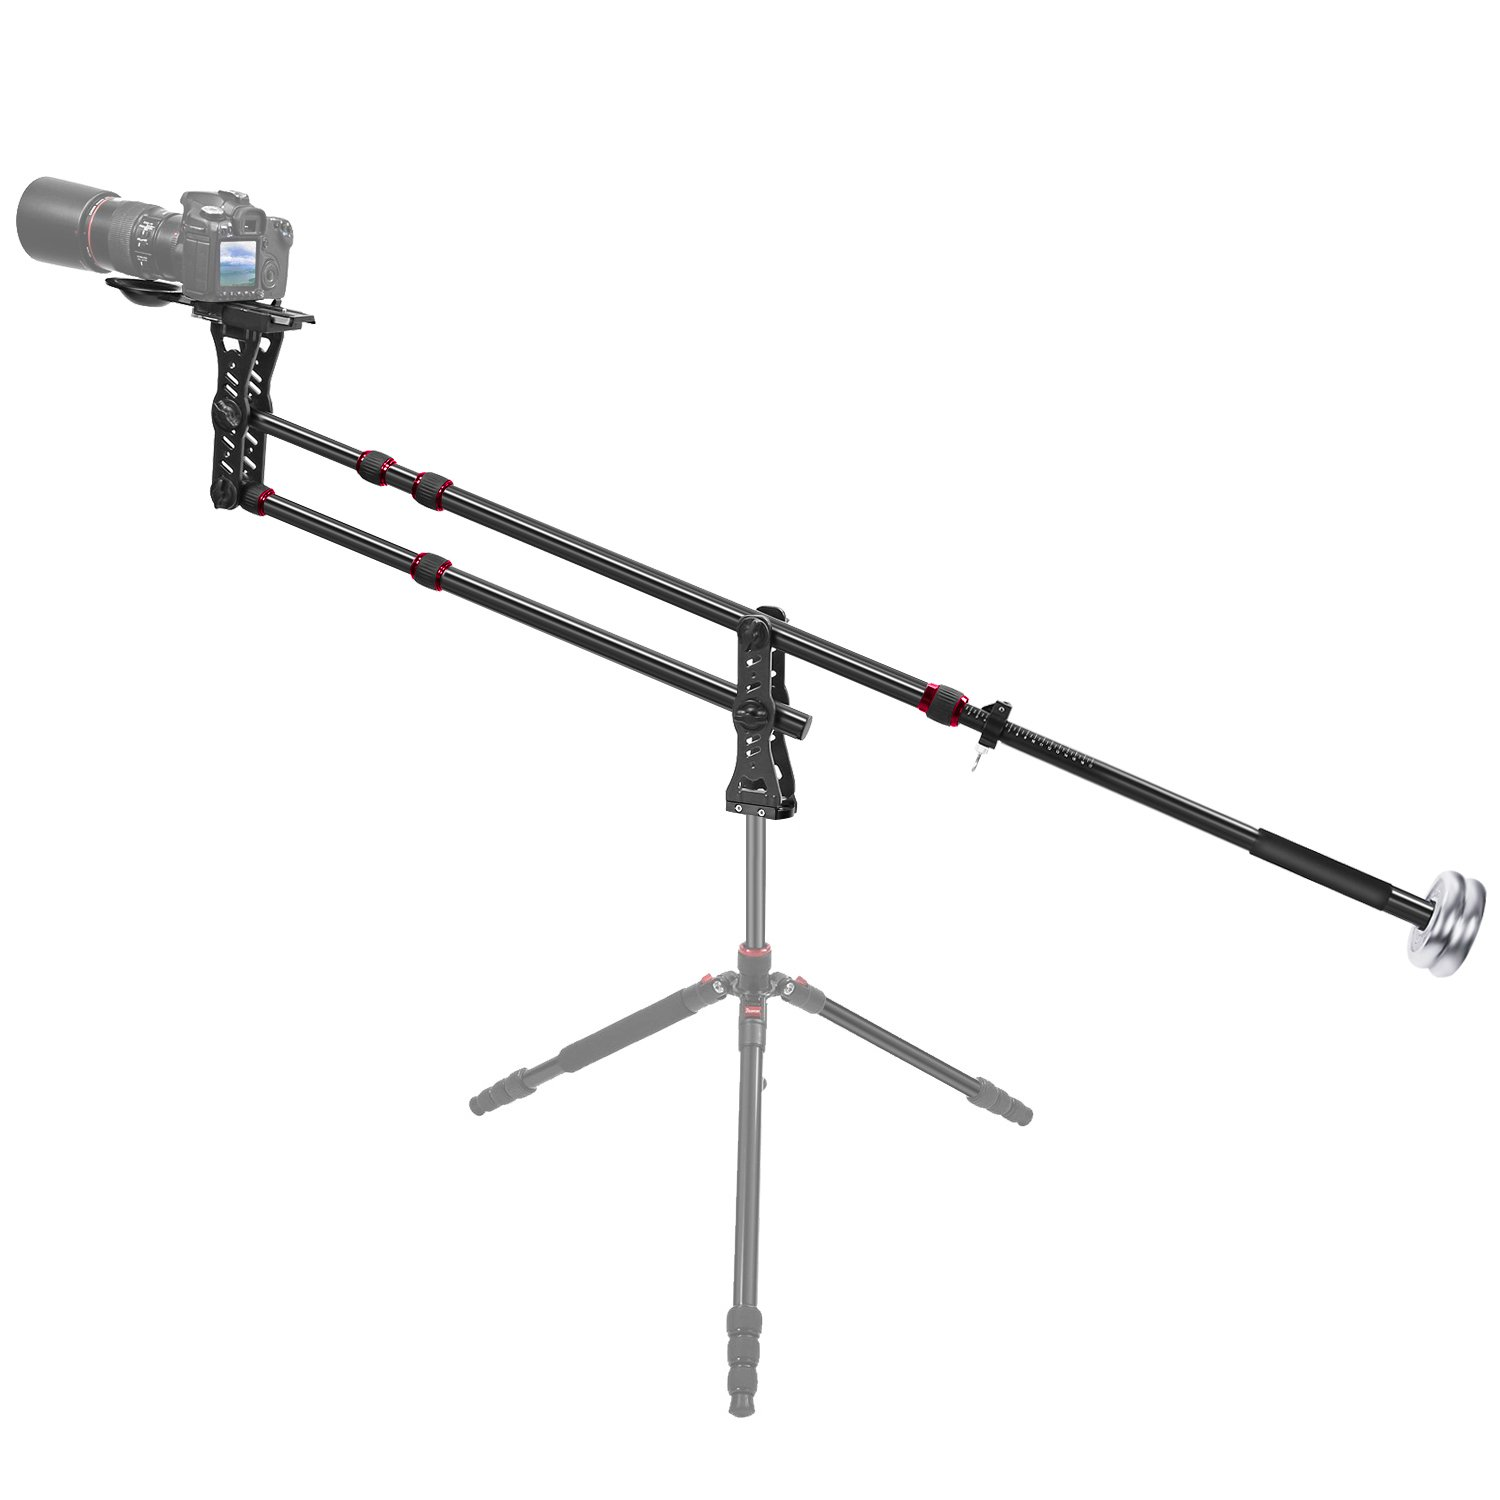 Neewer 70 inches/177 centimeters Aluminum Alloy Jib Arm Camera Crane with 360 Degree Pan Ball Head, Counter Weight, 1/4 and 3/8-inch Quick Release Plate, Load Capacity up to 8 kilograms / 17.6 pounds